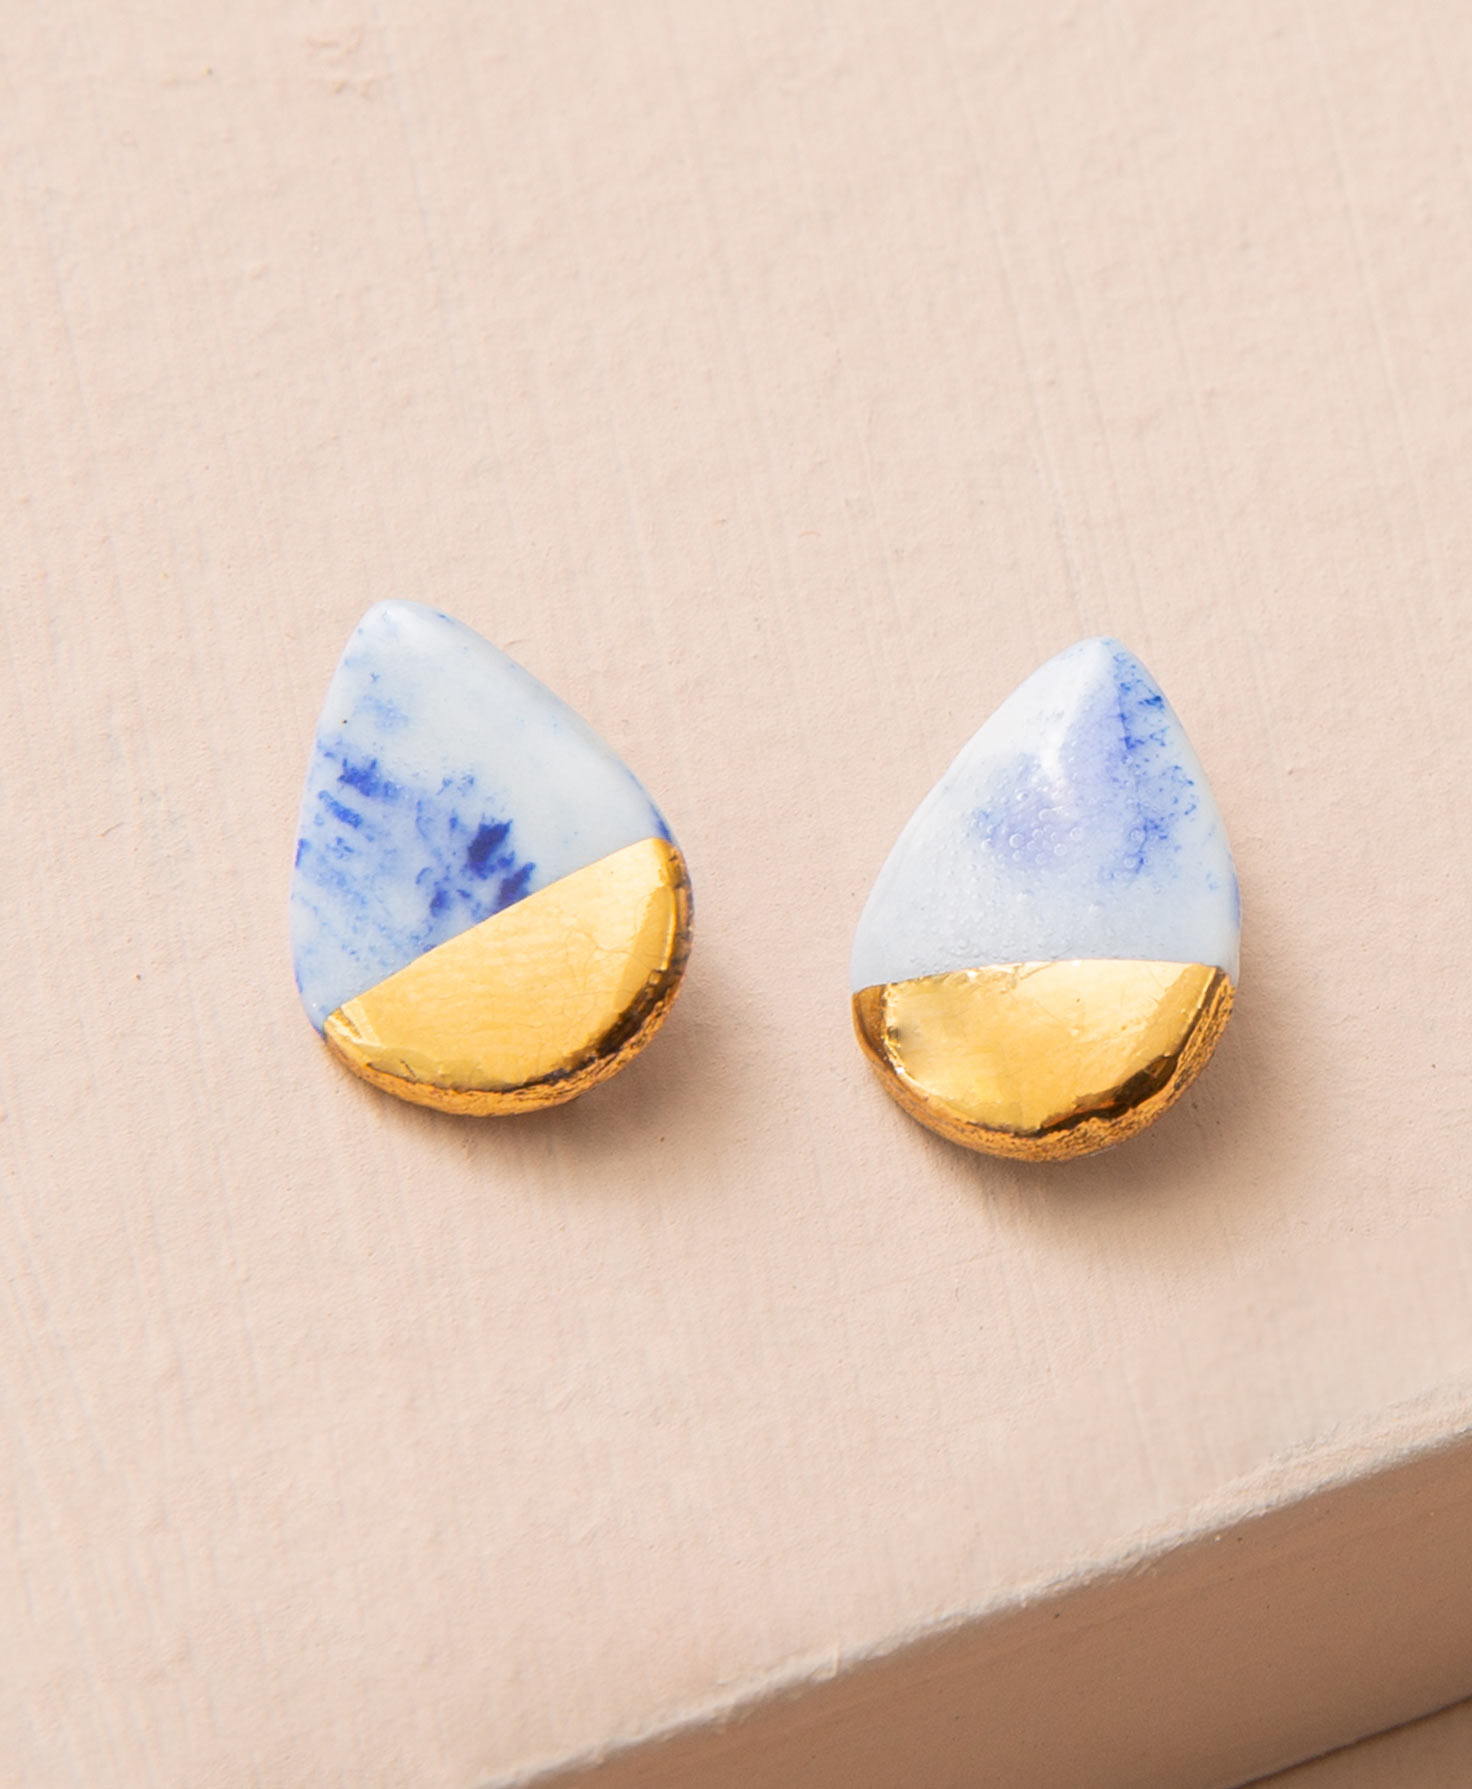 The Marbled Sky Studs lay against a peach colored background. They are dainty teardrop-shaped studs made of porcelain. The main body of the earring is white with cobalt blue markings, resembling a classic china pattern. The markings of each earring vary. The bottom of the earring is dipped in gold luster for a shining accent.